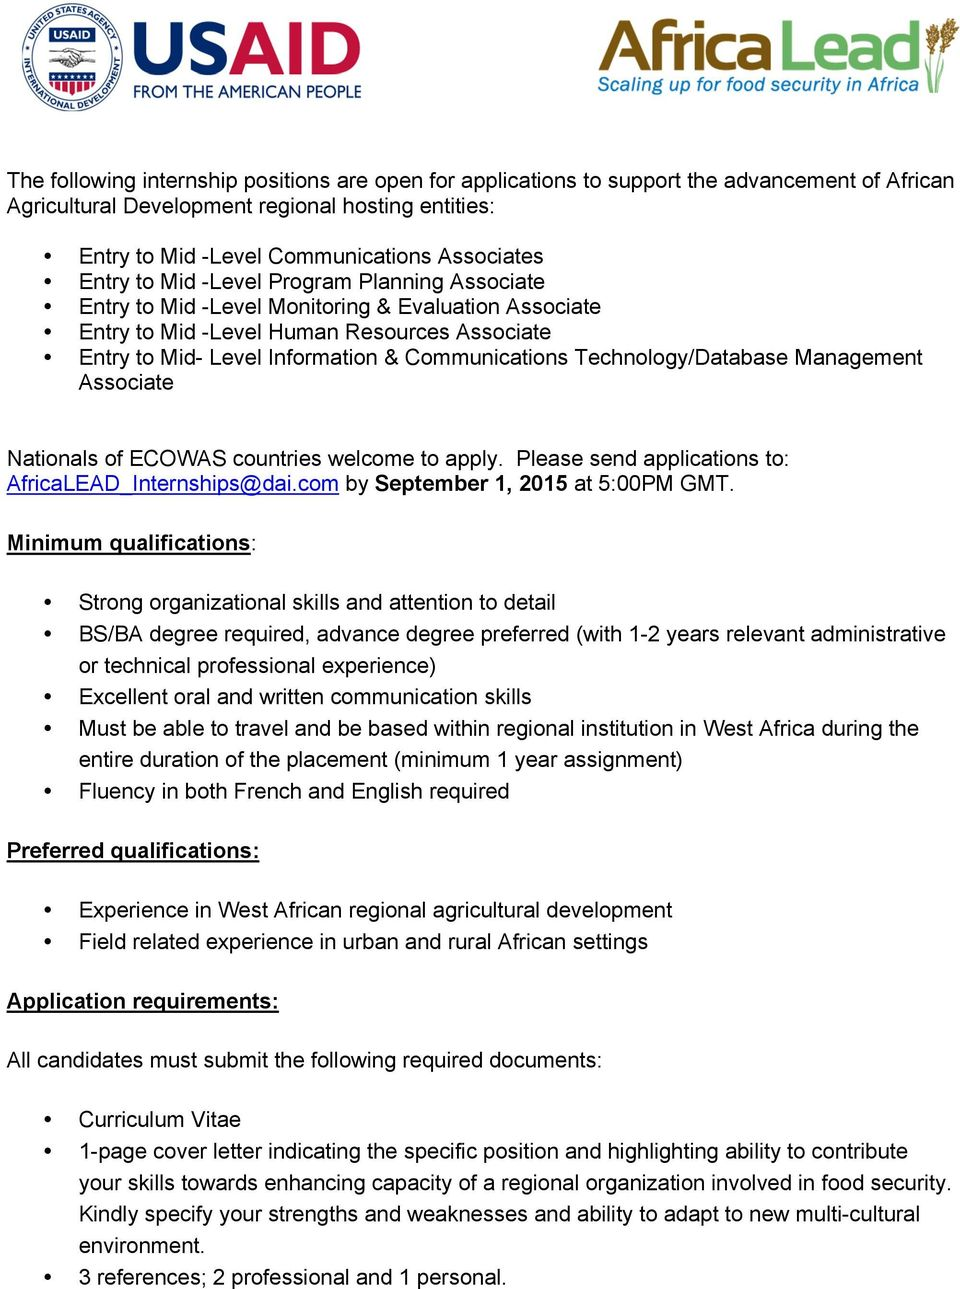 Technology/Database Management Associate Nationals of ECOWAS countries welcome to apply. Please send applications to: AfricaLEAD_Internships@dai.com by September 1, 2015 at 5:00PM GMT.